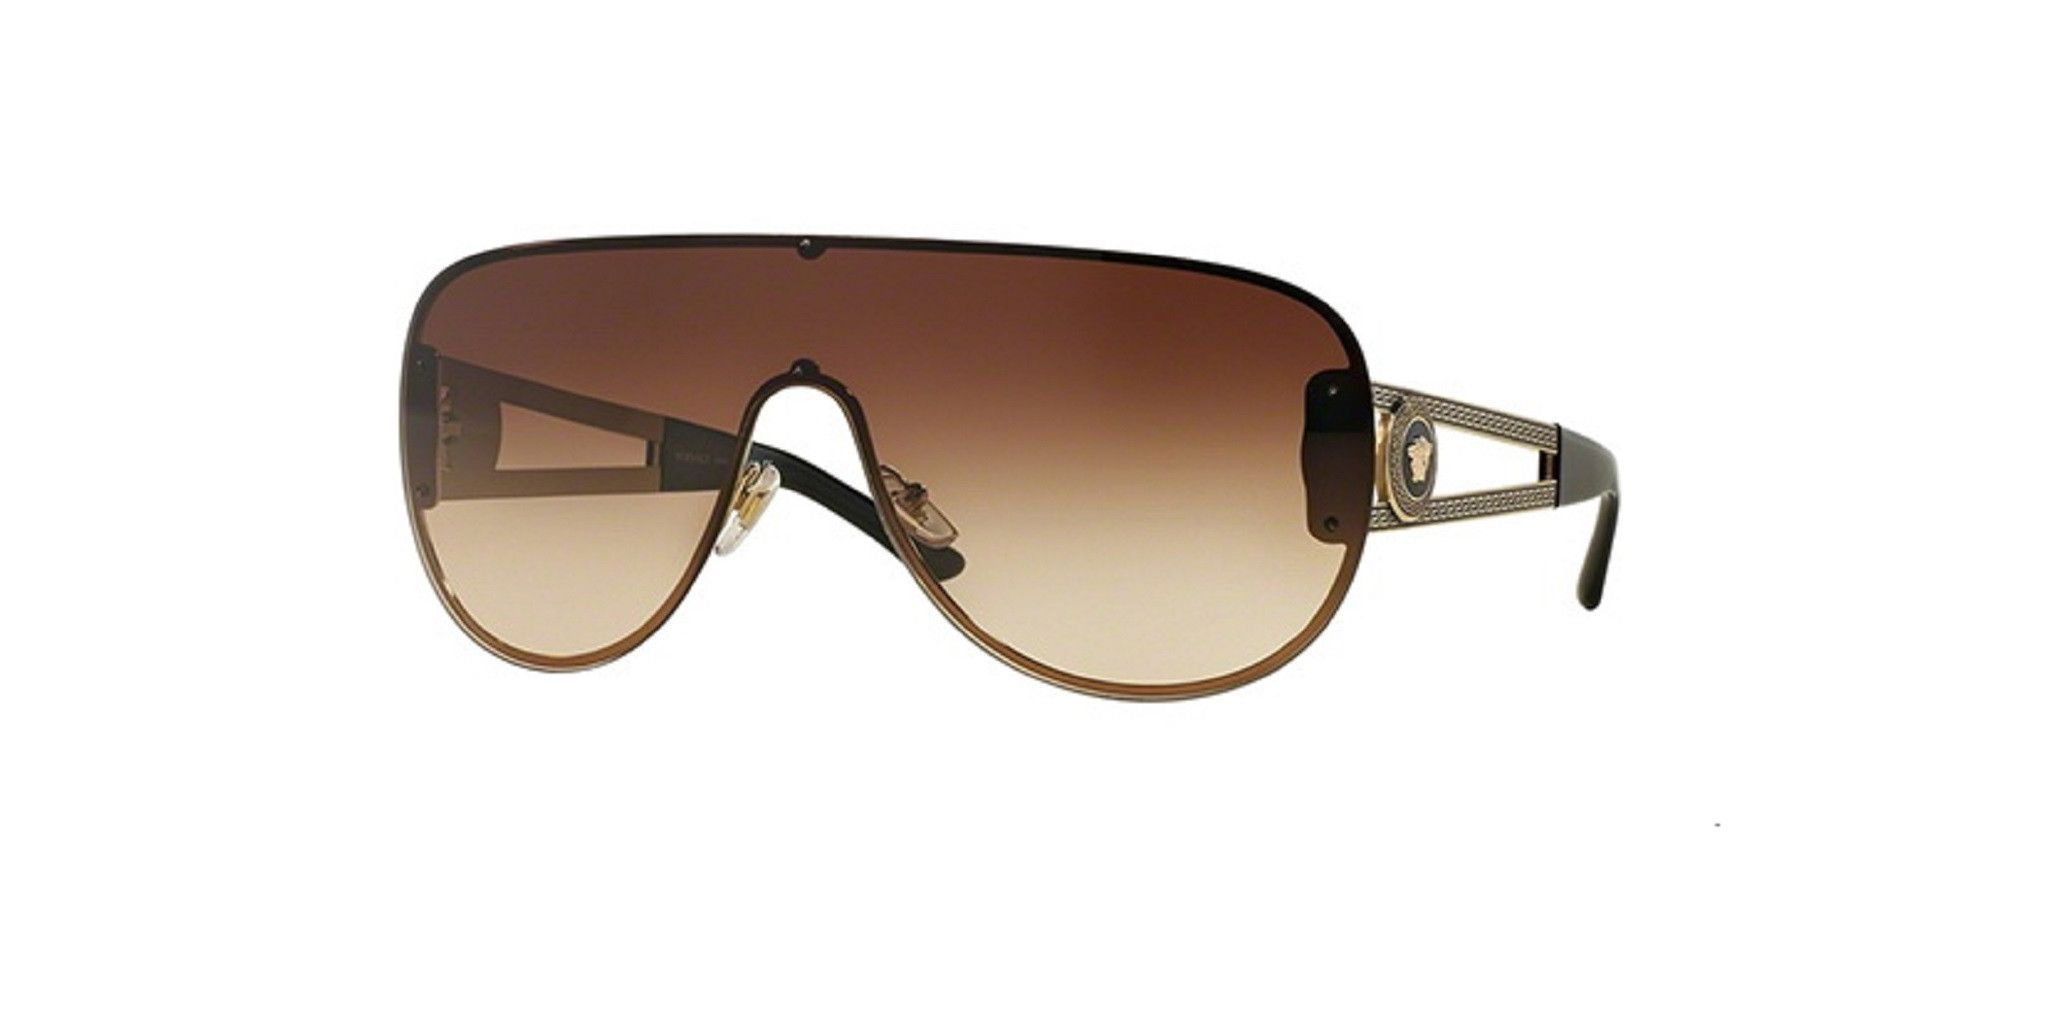 Versace VE2166 Sunglasses   Versace, Bald hairstyles and Shapes